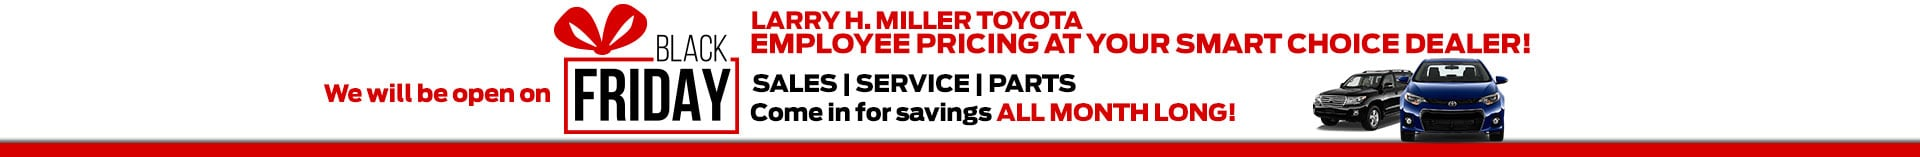 Black Friday Specials Toyota Albuquerque